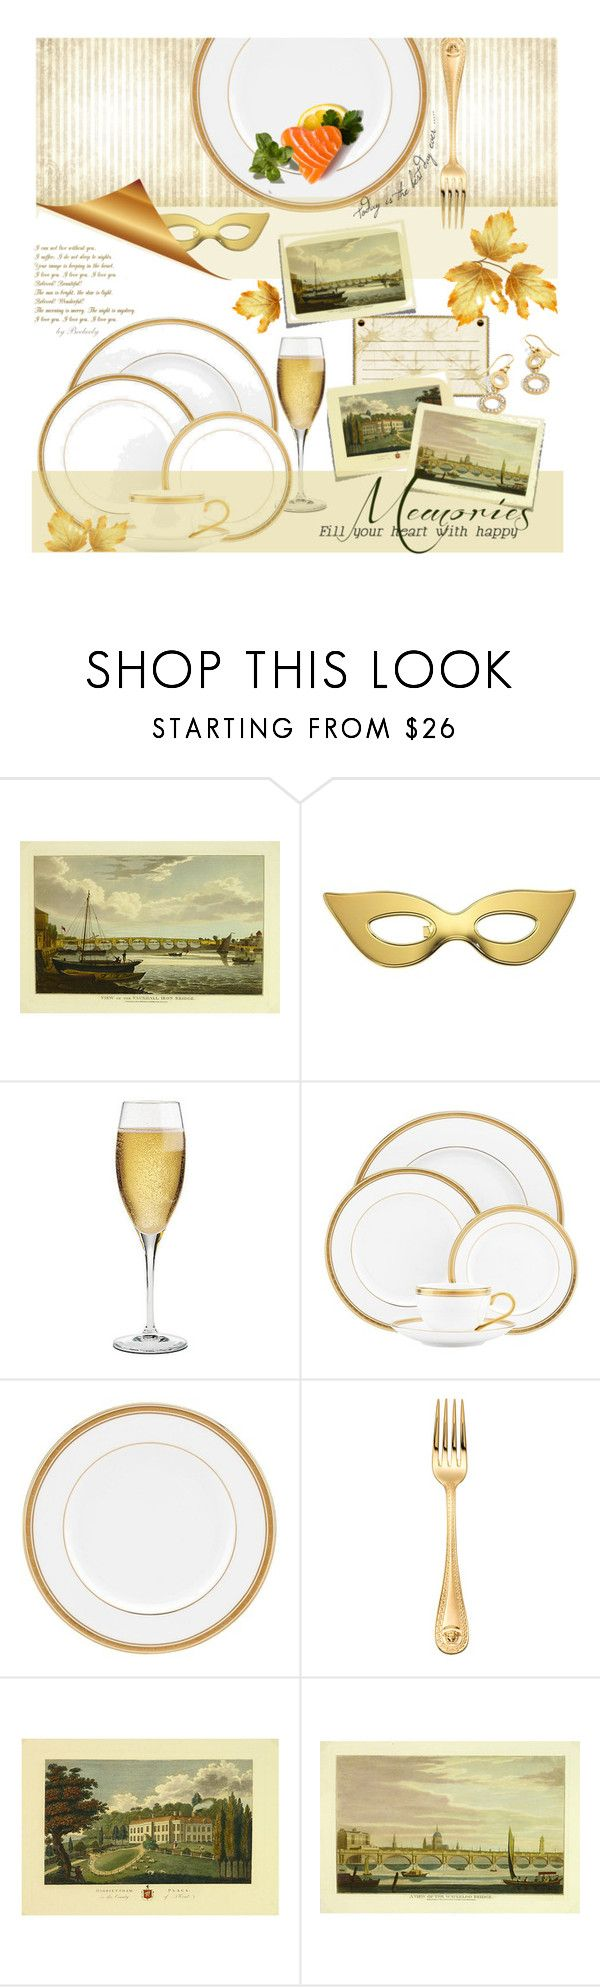 """Memories"" by beebeely-look ❤ liked on Polyvore featuring interior, interiors, interior design, home, home decor, interior decorating, Kate Spade, Riedel, Versace and kitchen"